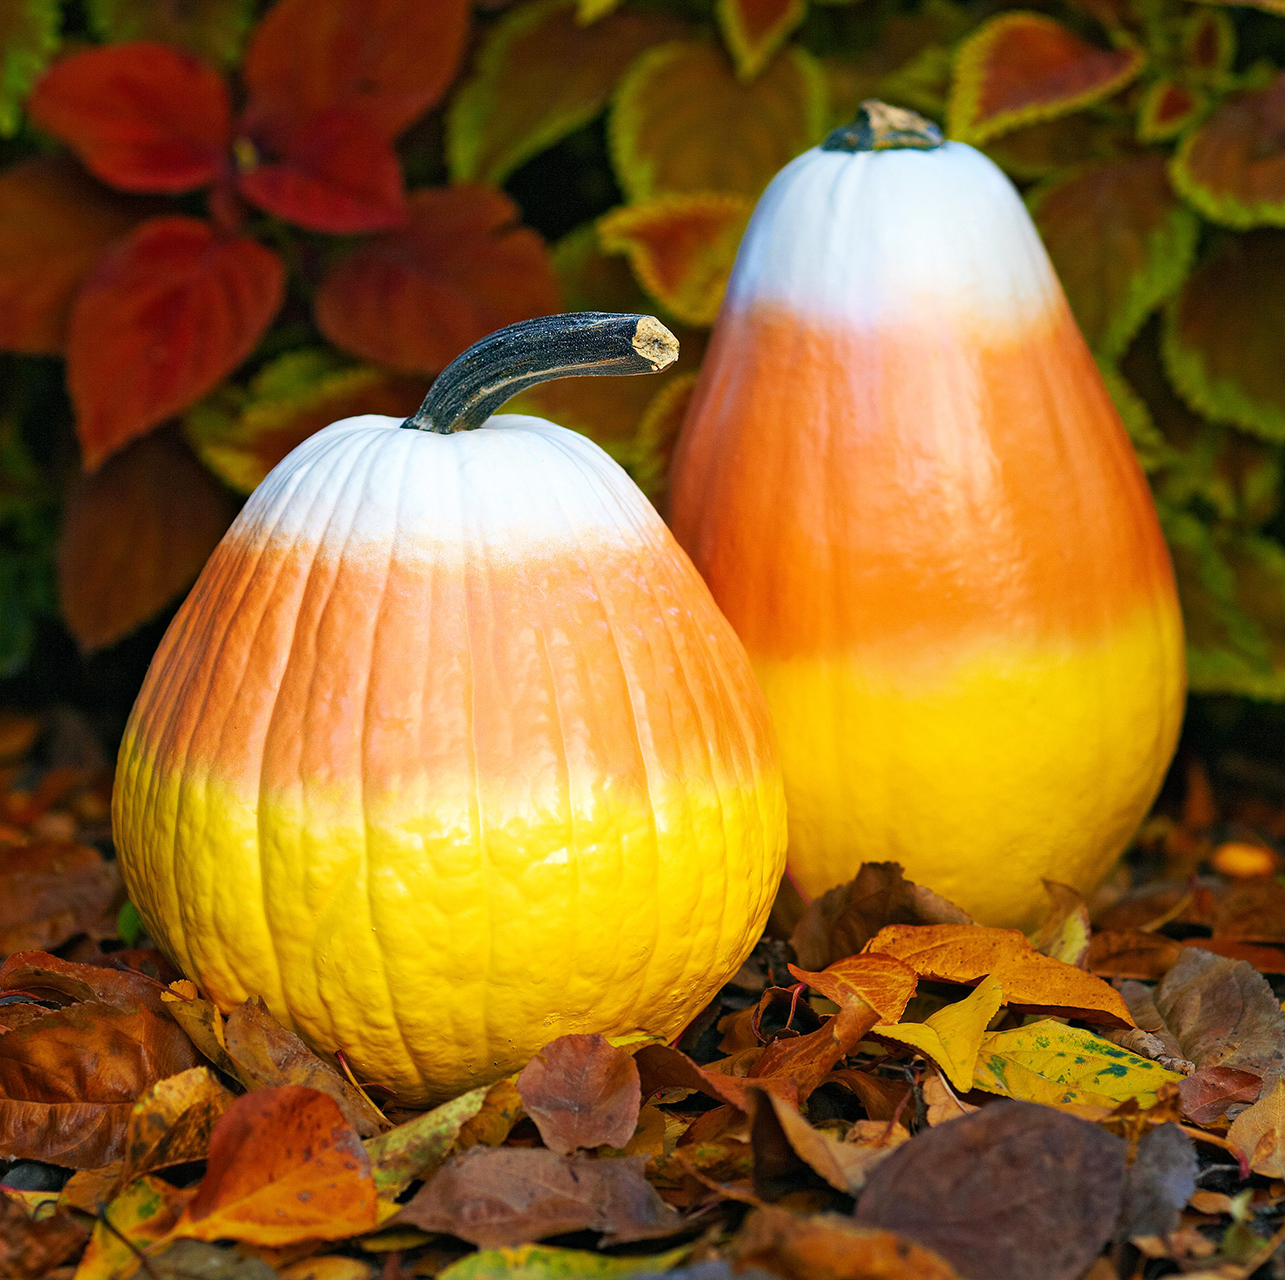 candy-corn cone-shaped pumpkins